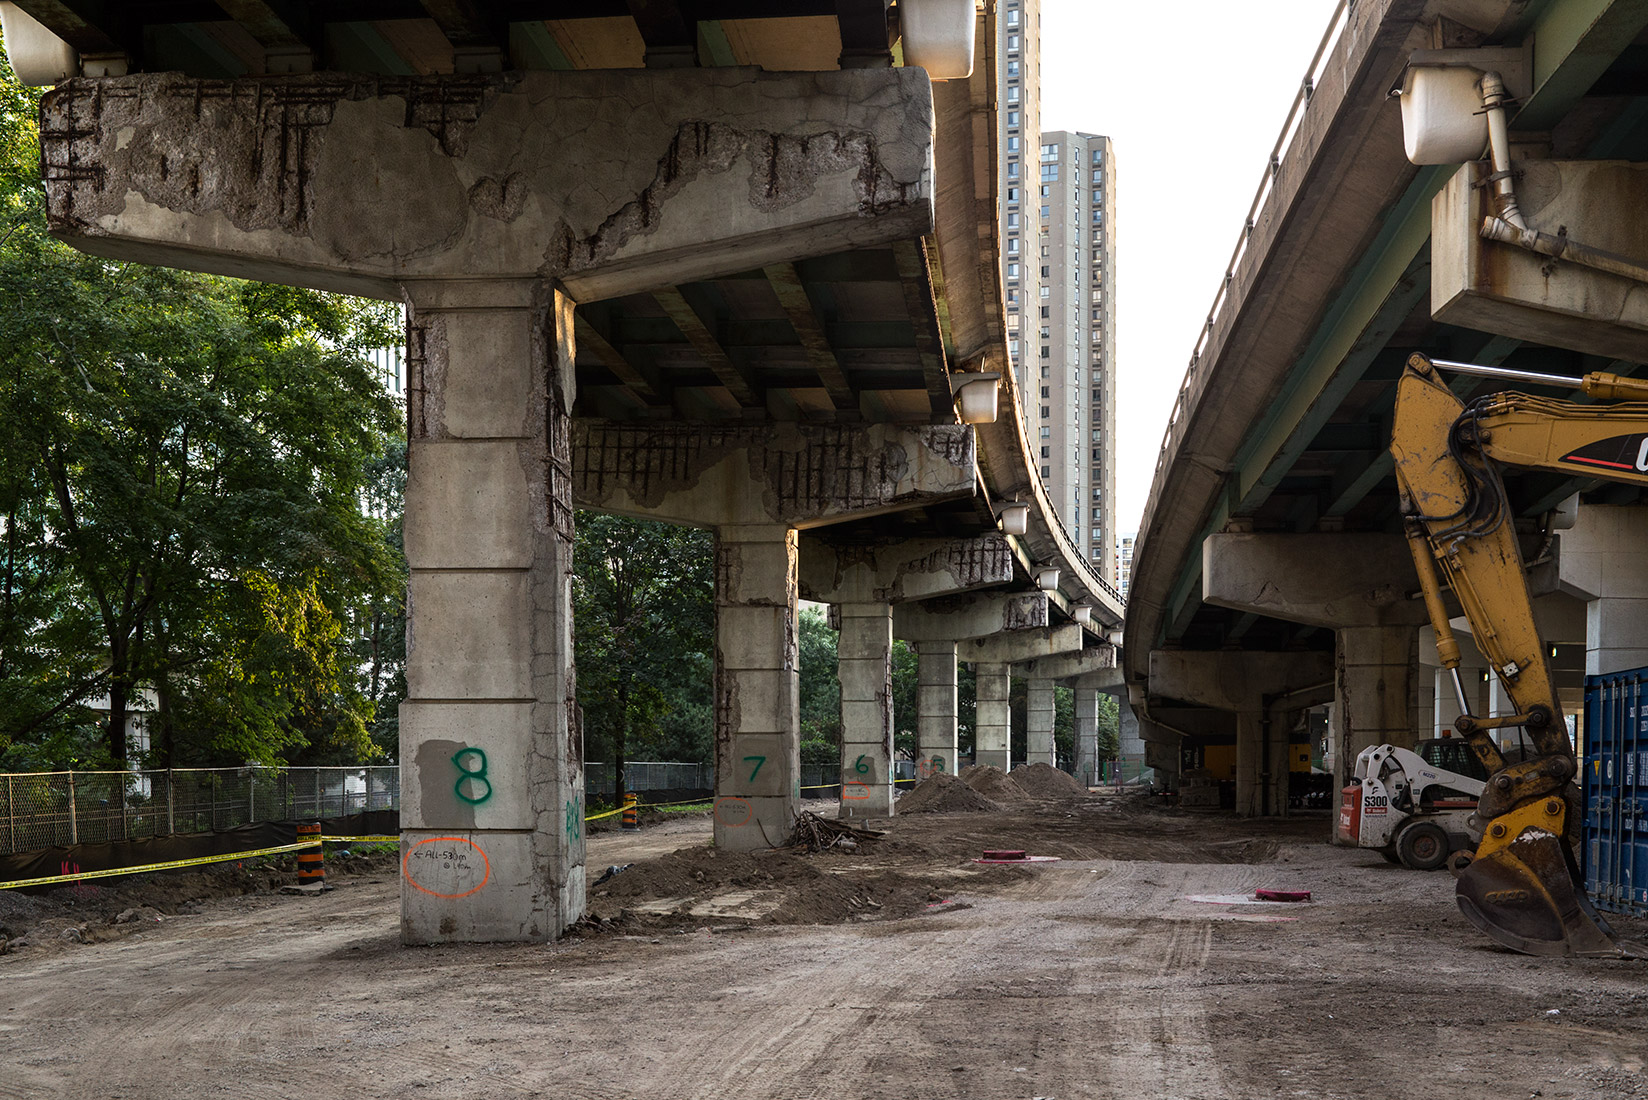 20160911. Work has begun on the Gardiner Expressway's future Simcoe Street off-ramp which will land here.